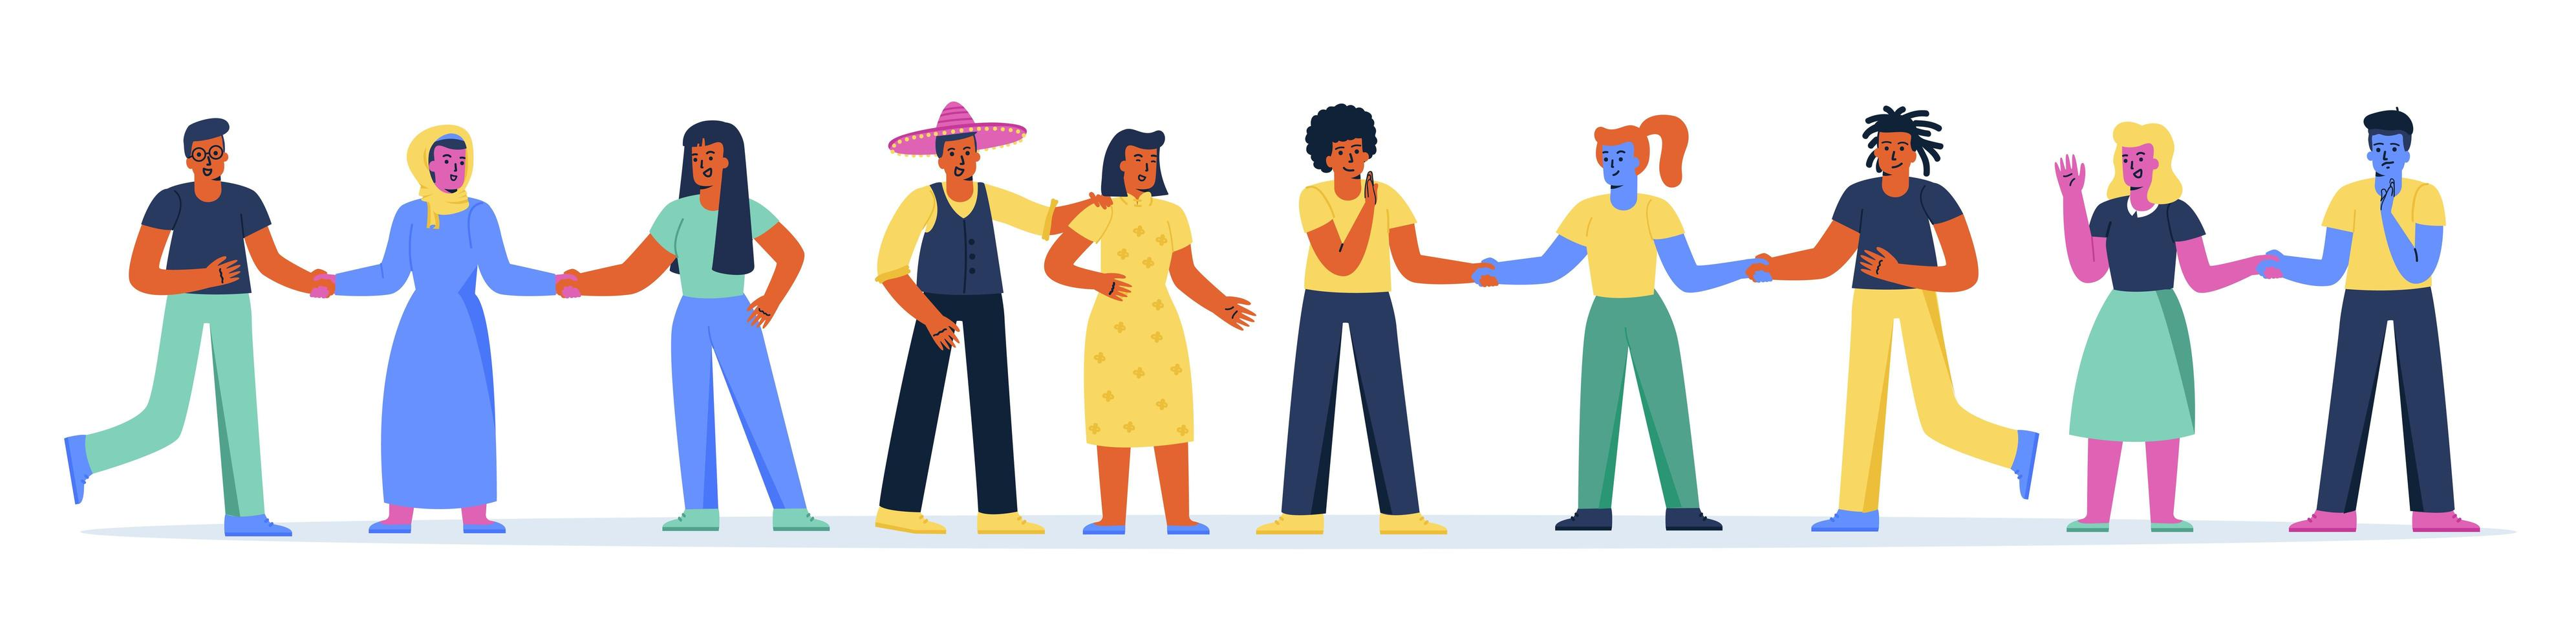 Horizontal banner with multiracial group of people vector